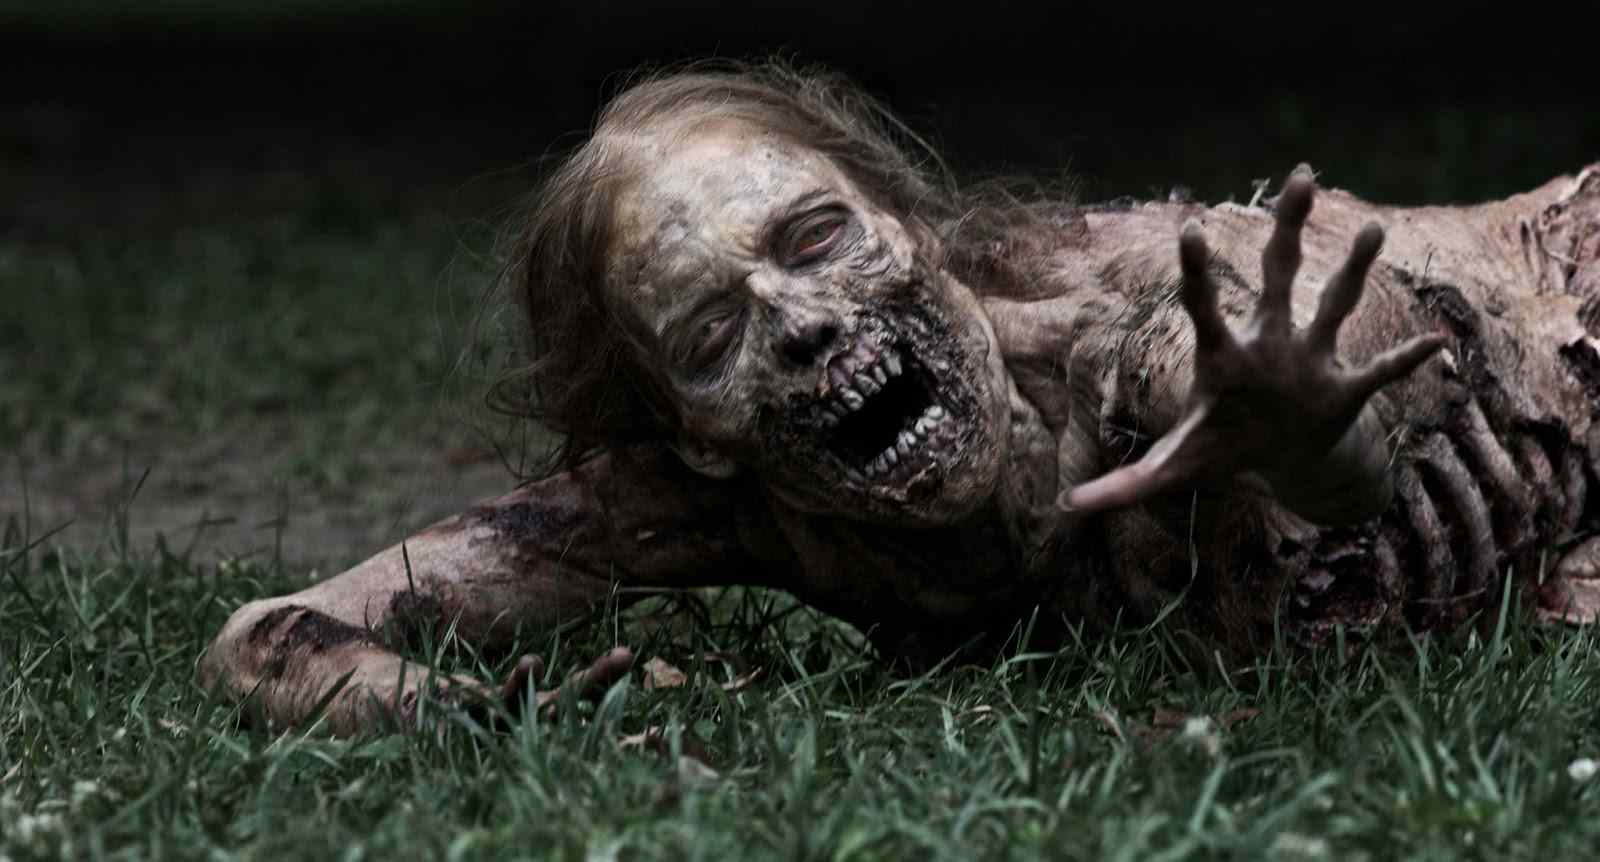 a dead zombie woman crawling and desperate for meat in the walking dead.